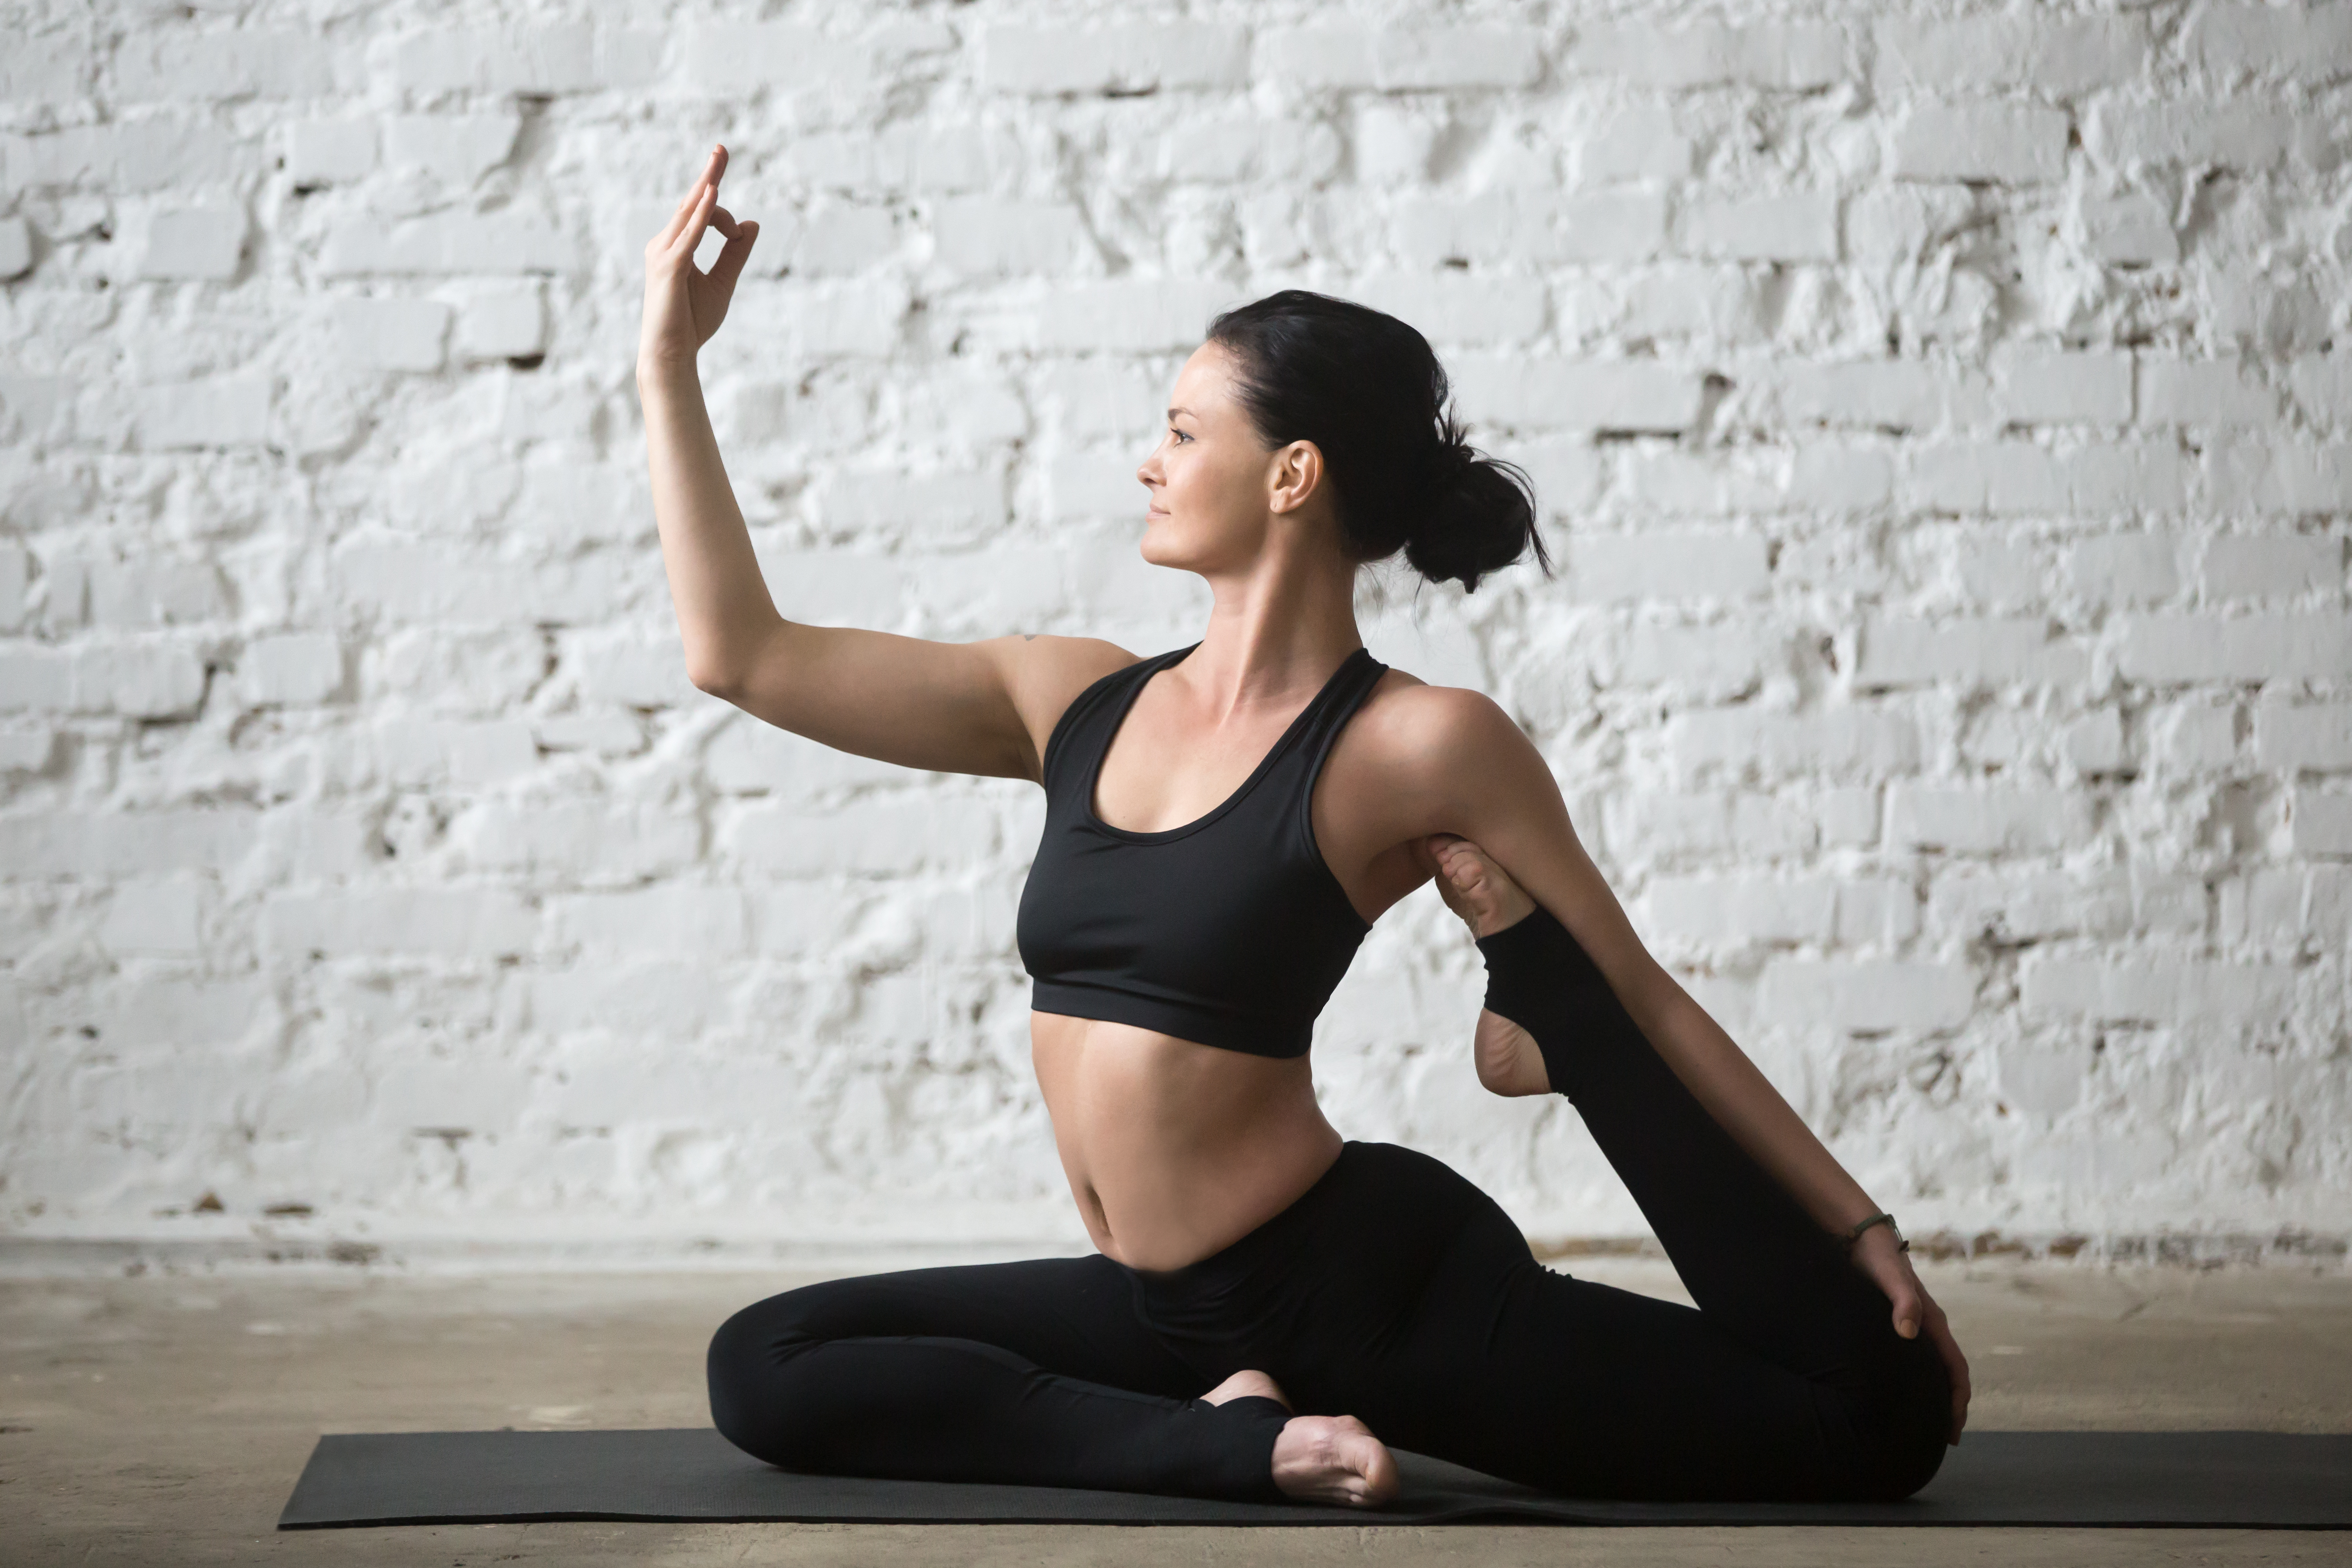 Yoga Poses: One-legged King Pigeon Pose - Z Living